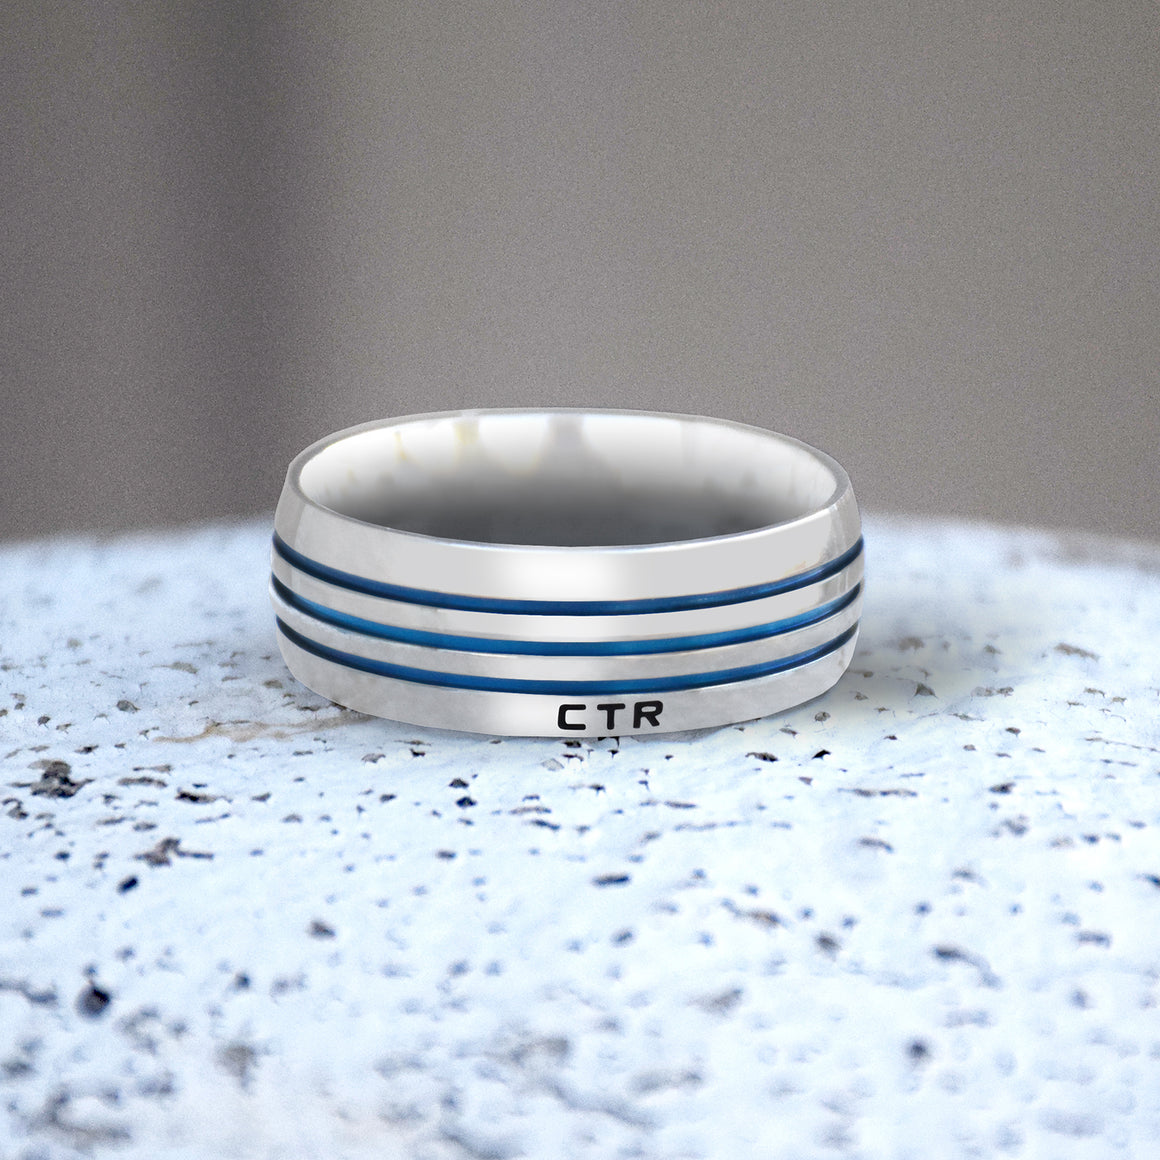 Azure Stripe CTR Men's Designer Ring - Stainless Steel